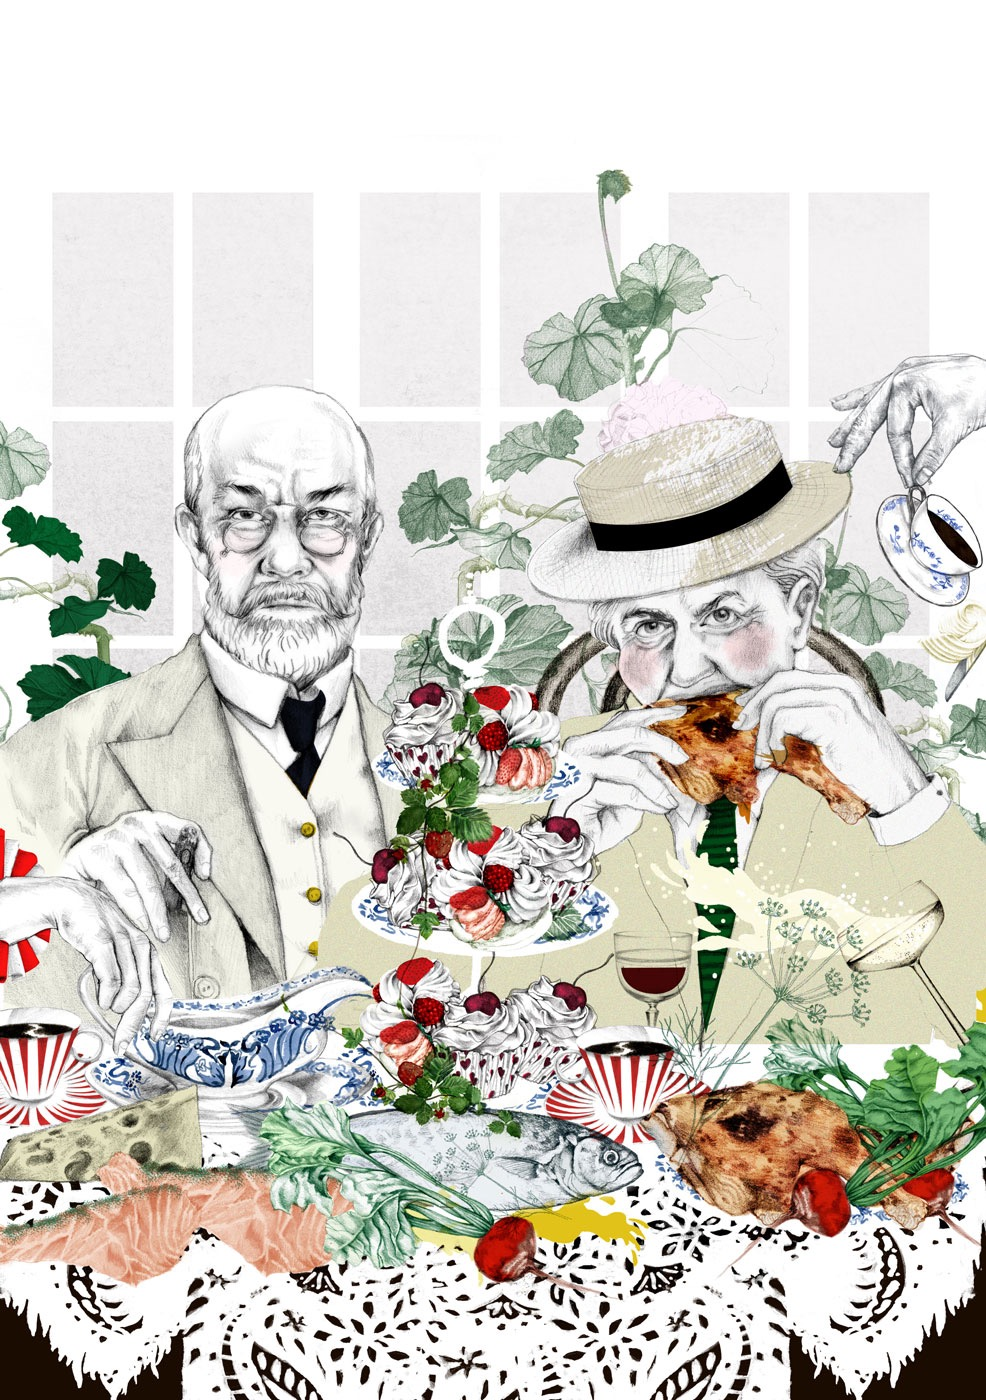 illustrator, illustrators, illustration, illustrations, man, men, woman, women, eating, couple, tea, wine, beverages, lace, doily, leaf, leaves, fish, glasses, suit, hat, hats, cup, cups, cupcake, cupcakes